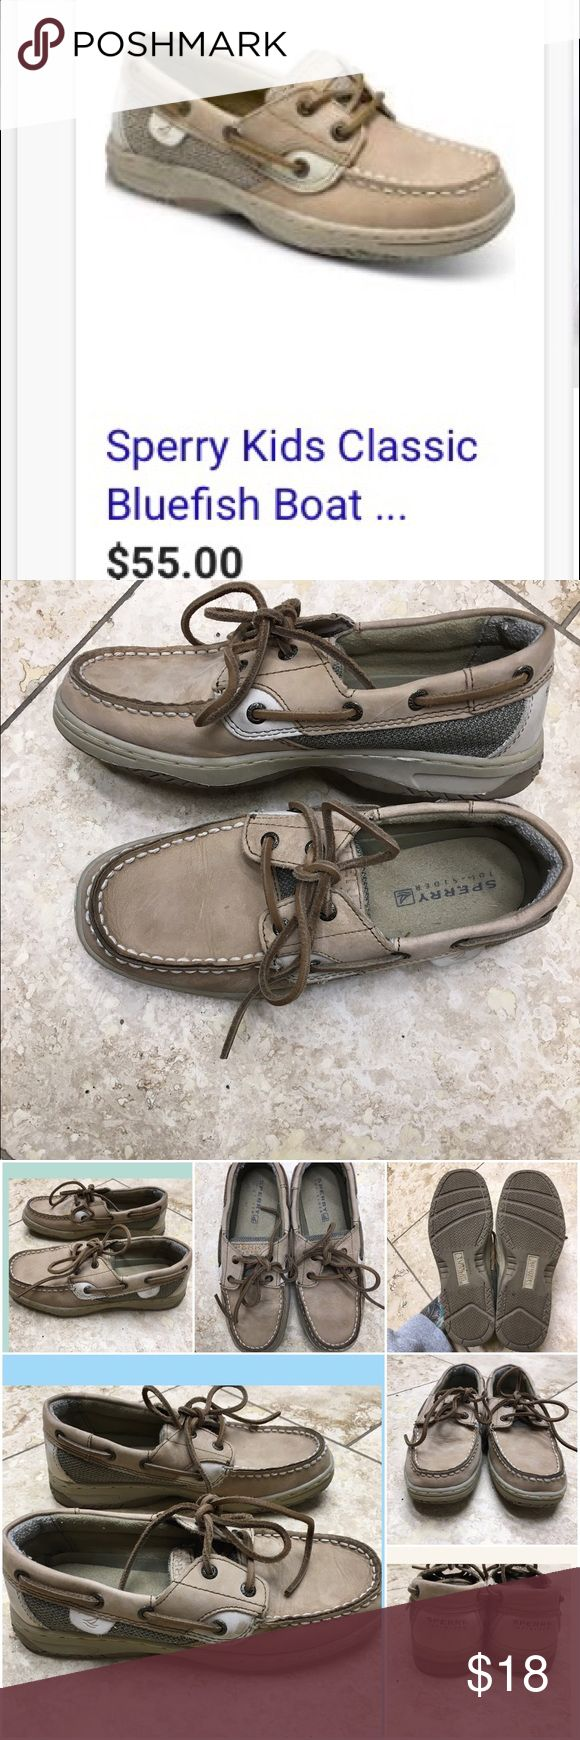 💥sale💥 Sperry Kid's classic Bluefish boat shoes In used condition, these still have a lot of wear left in them. They are perfectly broken in, and the leather is still in awesome condition. The shoestrings are also in great shape. Size 3 in kids. Sperry Shoes Slippers